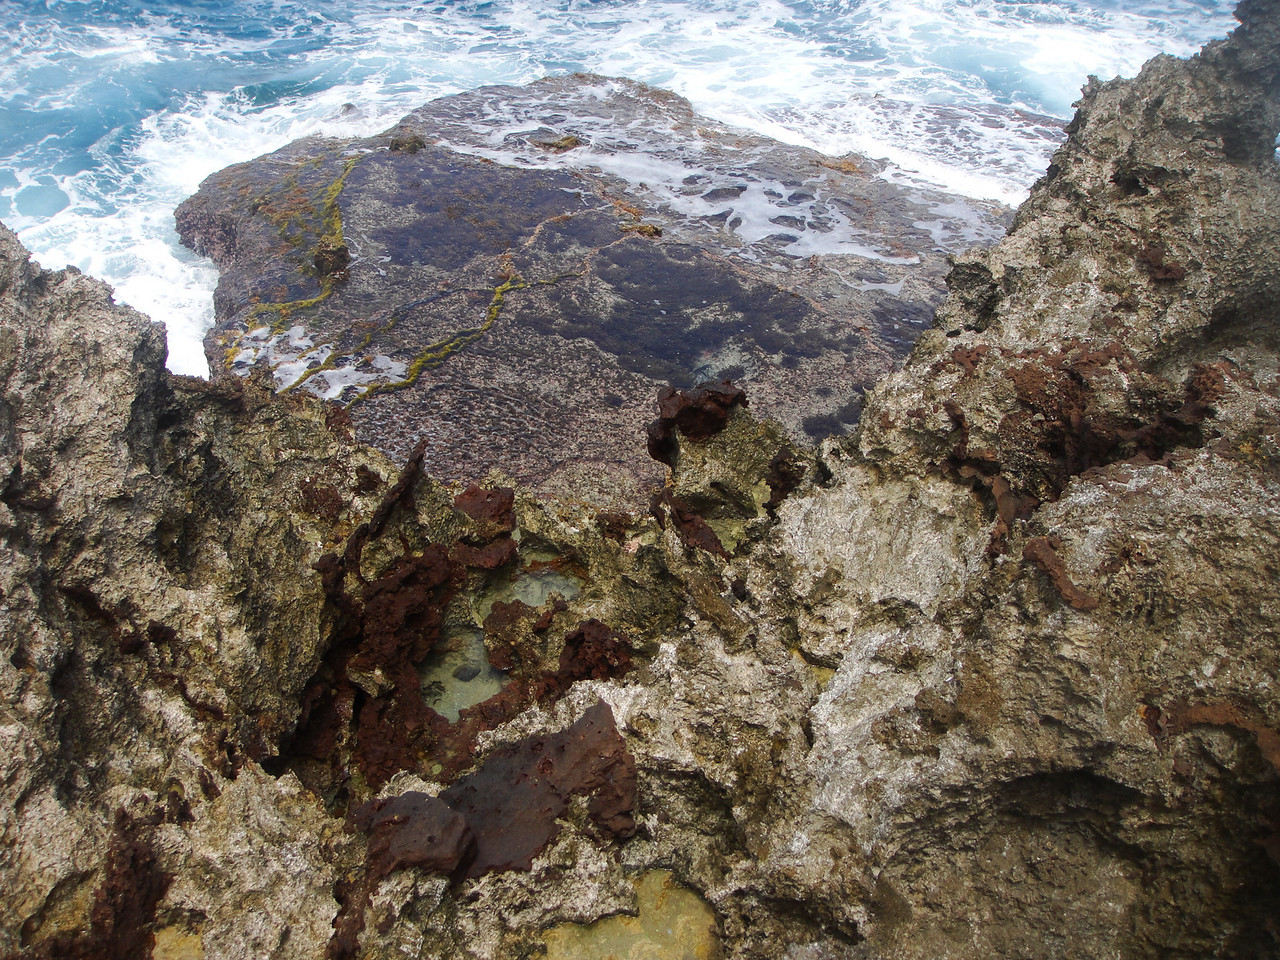 Many of these little tidal pools had bubbles coming up with each wave.  It's a very porous coral reef..